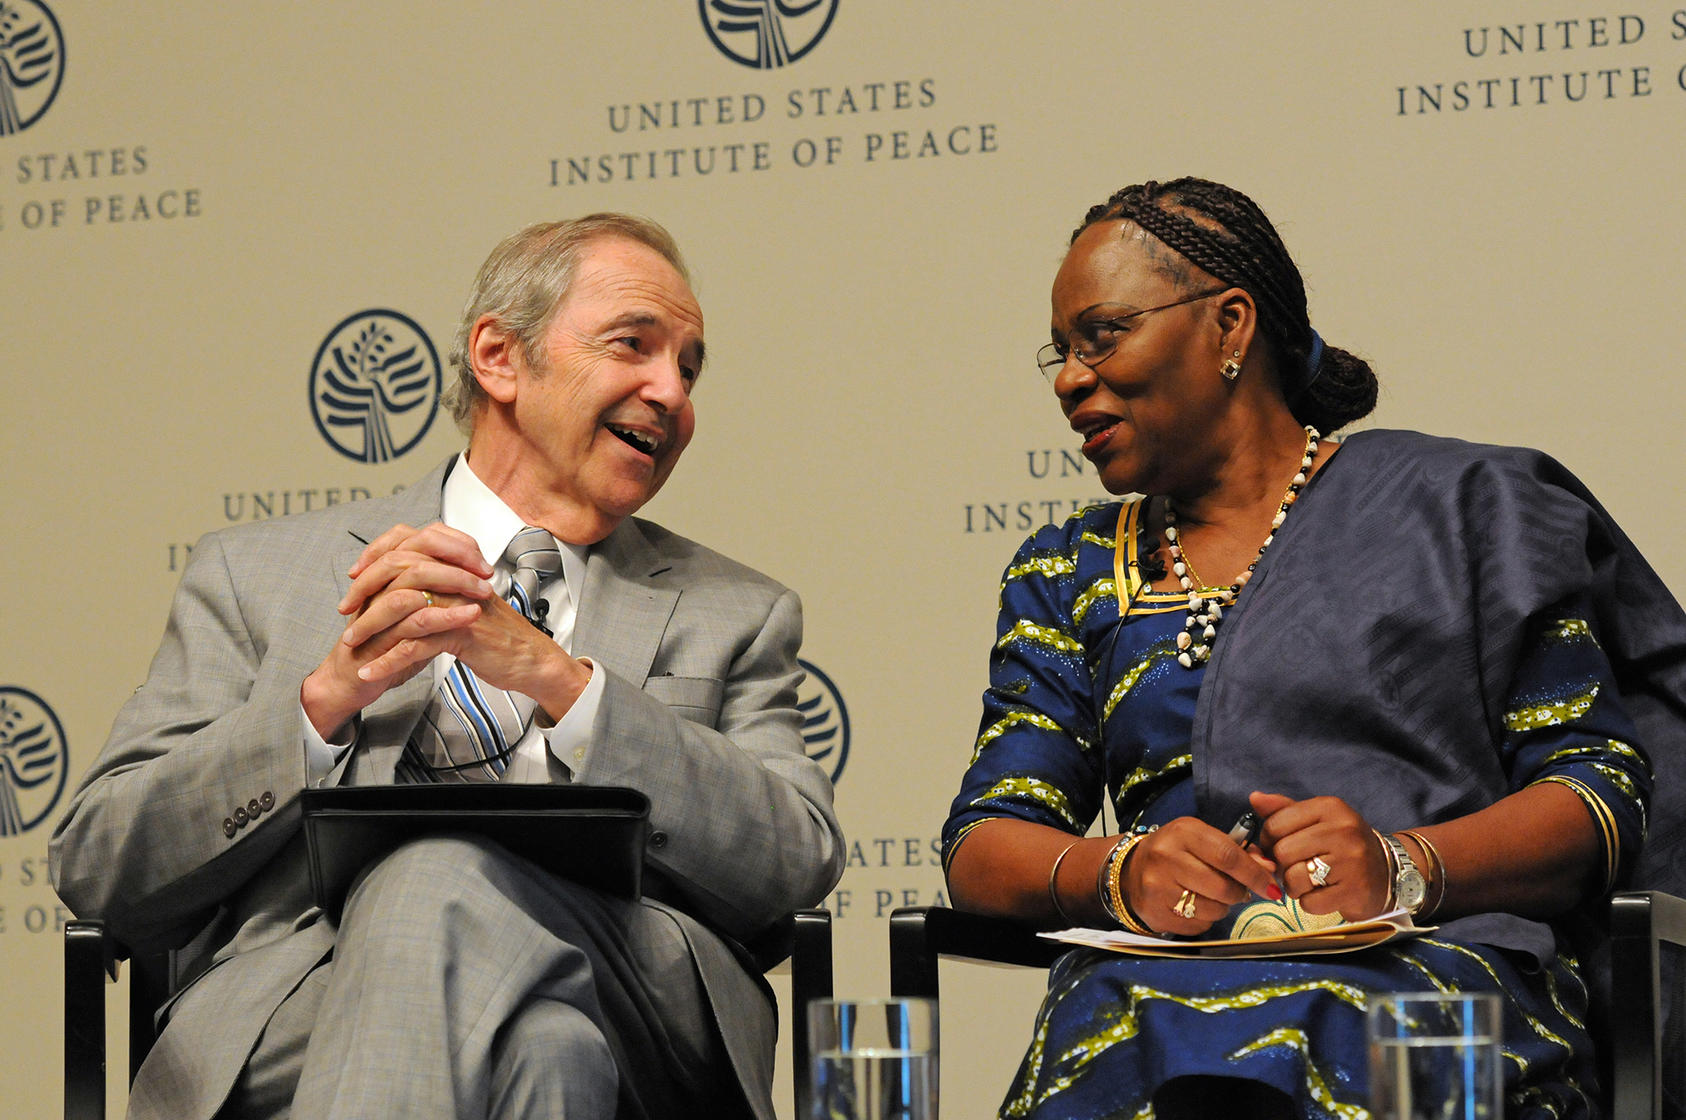 Ambassador Lyman and former Mozambique Ambassador to the U.S. H.E. Amélia Matos Sumbana at a USIP event on the role of women's leadership in peacemaking and development in Africa, May 26, 2015.